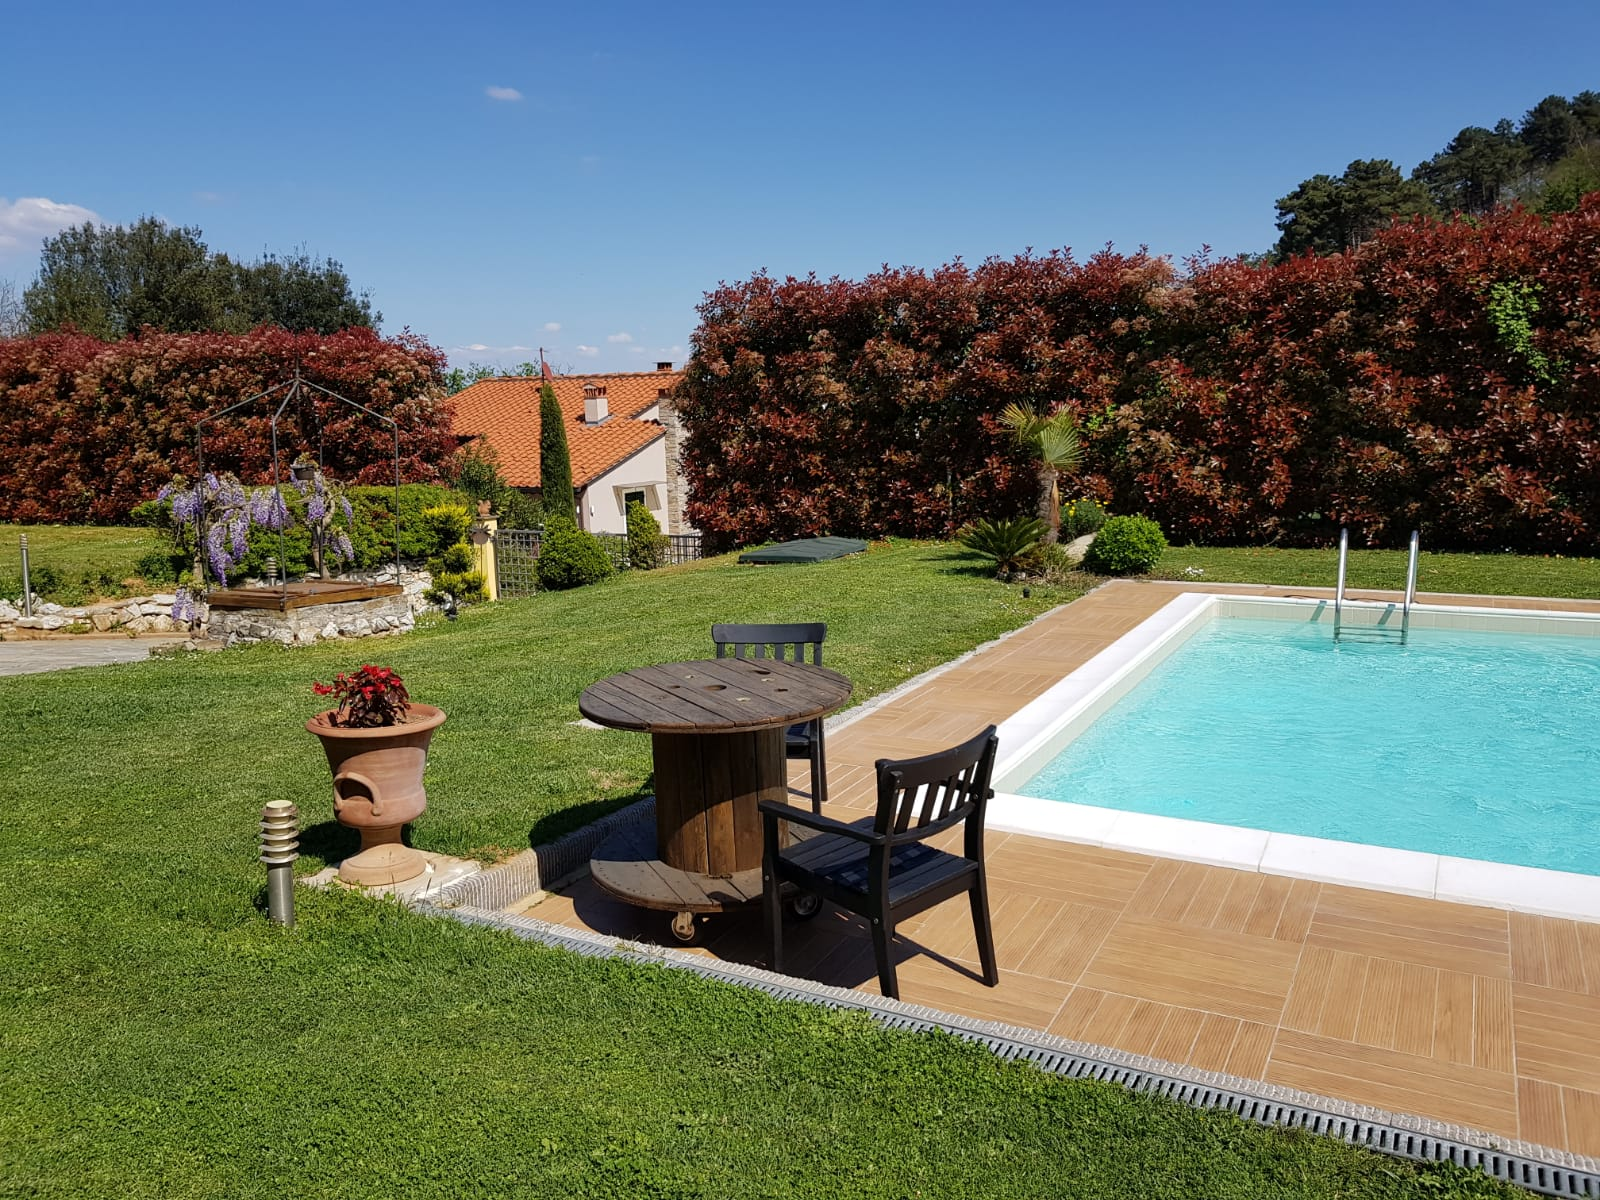 Villa With Swimming Pool In Lucca Countryside